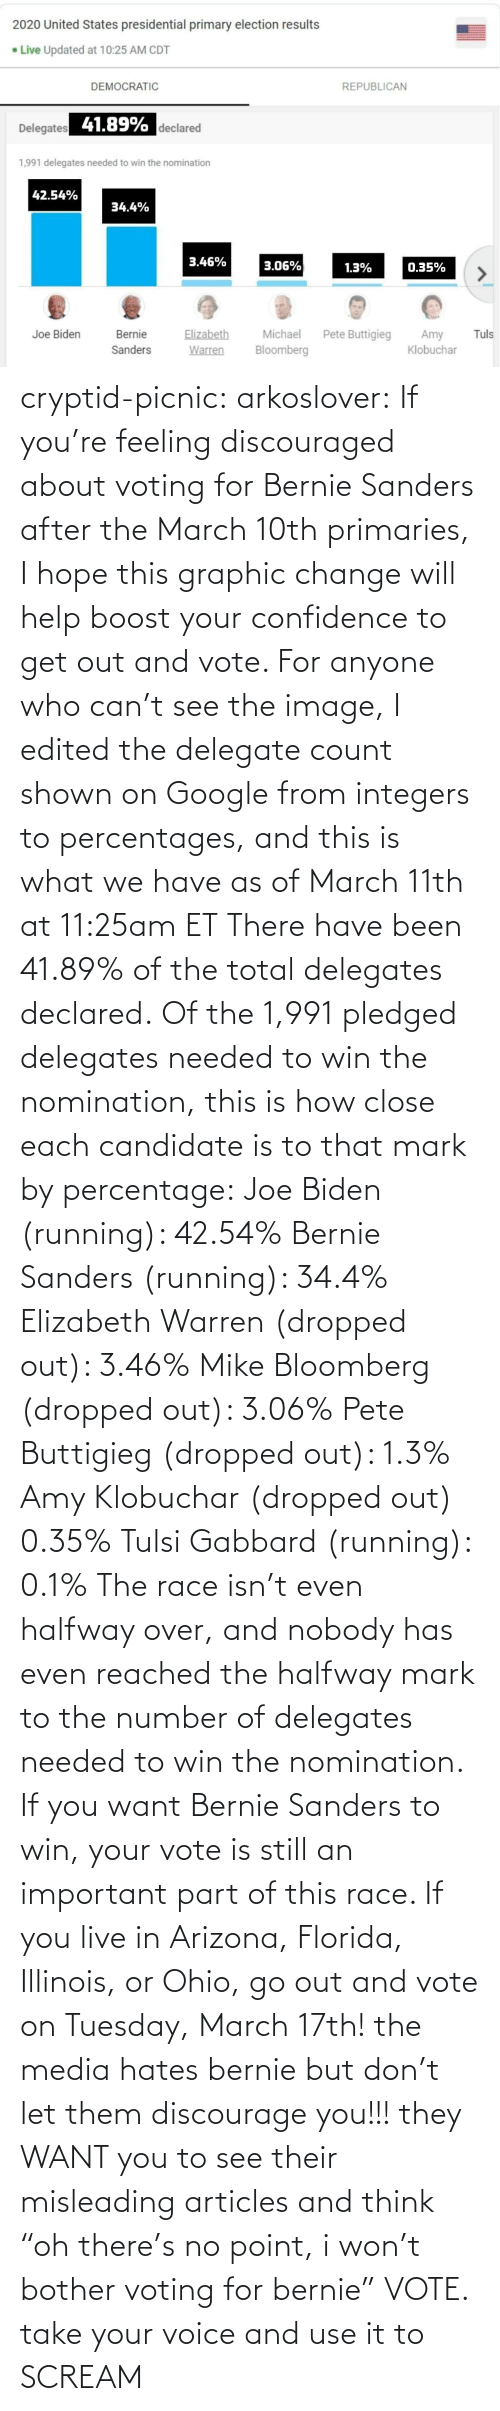 "Joe Biden: cryptid-picnic: arkoslover:   If you're feeling discouraged about voting for Bernie Sanders after the March 10th primaries, I hope this graphic change will help boost your confidence to get out and vote. For anyone who can't see the image, I edited the delegate count shown on Google from integers to percentages, and this is what we have as of March 11th at 11:25am ET There have been 41.89% of the total delegates declared. Of the 1,991 pledged delegates needed to win the nomination, this is how close each candidate is to that mark by percentage: Joe Biden (running): 42.54% Bernie Sanders (running): 34.4% Elizabeth Warren (dropped out): 3.46% Mike Bloomberg (dropped out): 3.06% Pete Buttigieg (dropped out): 1.3% Amy Klobuchar (dropped out) 0.35% Tulsi Gabbard (running): 0.1% The race isn't even halfway over, and nobody has even reached the halfway mark to the number of delegates needed to win the nomination. If you want Bernie Sanders to win, your vote is still an important part of this race. If you live in Arizona, Florida, Illinois, or Ohio, go out and vote on Tuesday, March 17th!    the media hates bernie but don't let them discourage you!!! they WANT you to see their misleading articles and think ""oh there's no point, i won't bother voting for bernie"" VOTE. take your voice and use it to SCREAM"